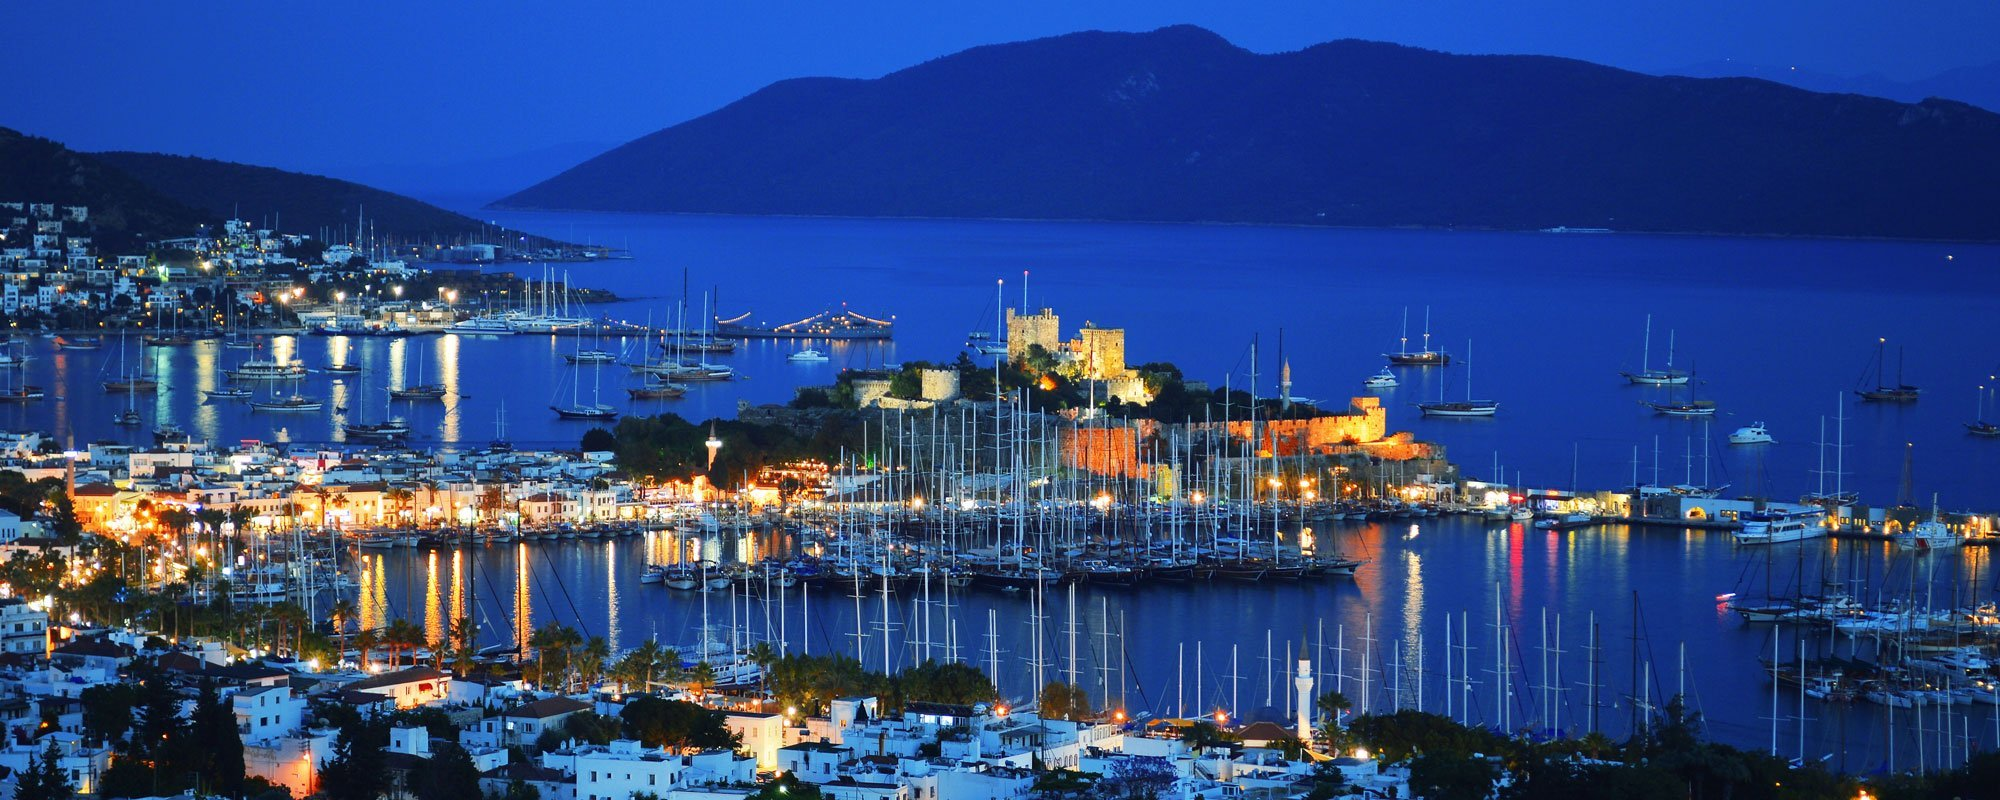 Property for Sale in Bodrum